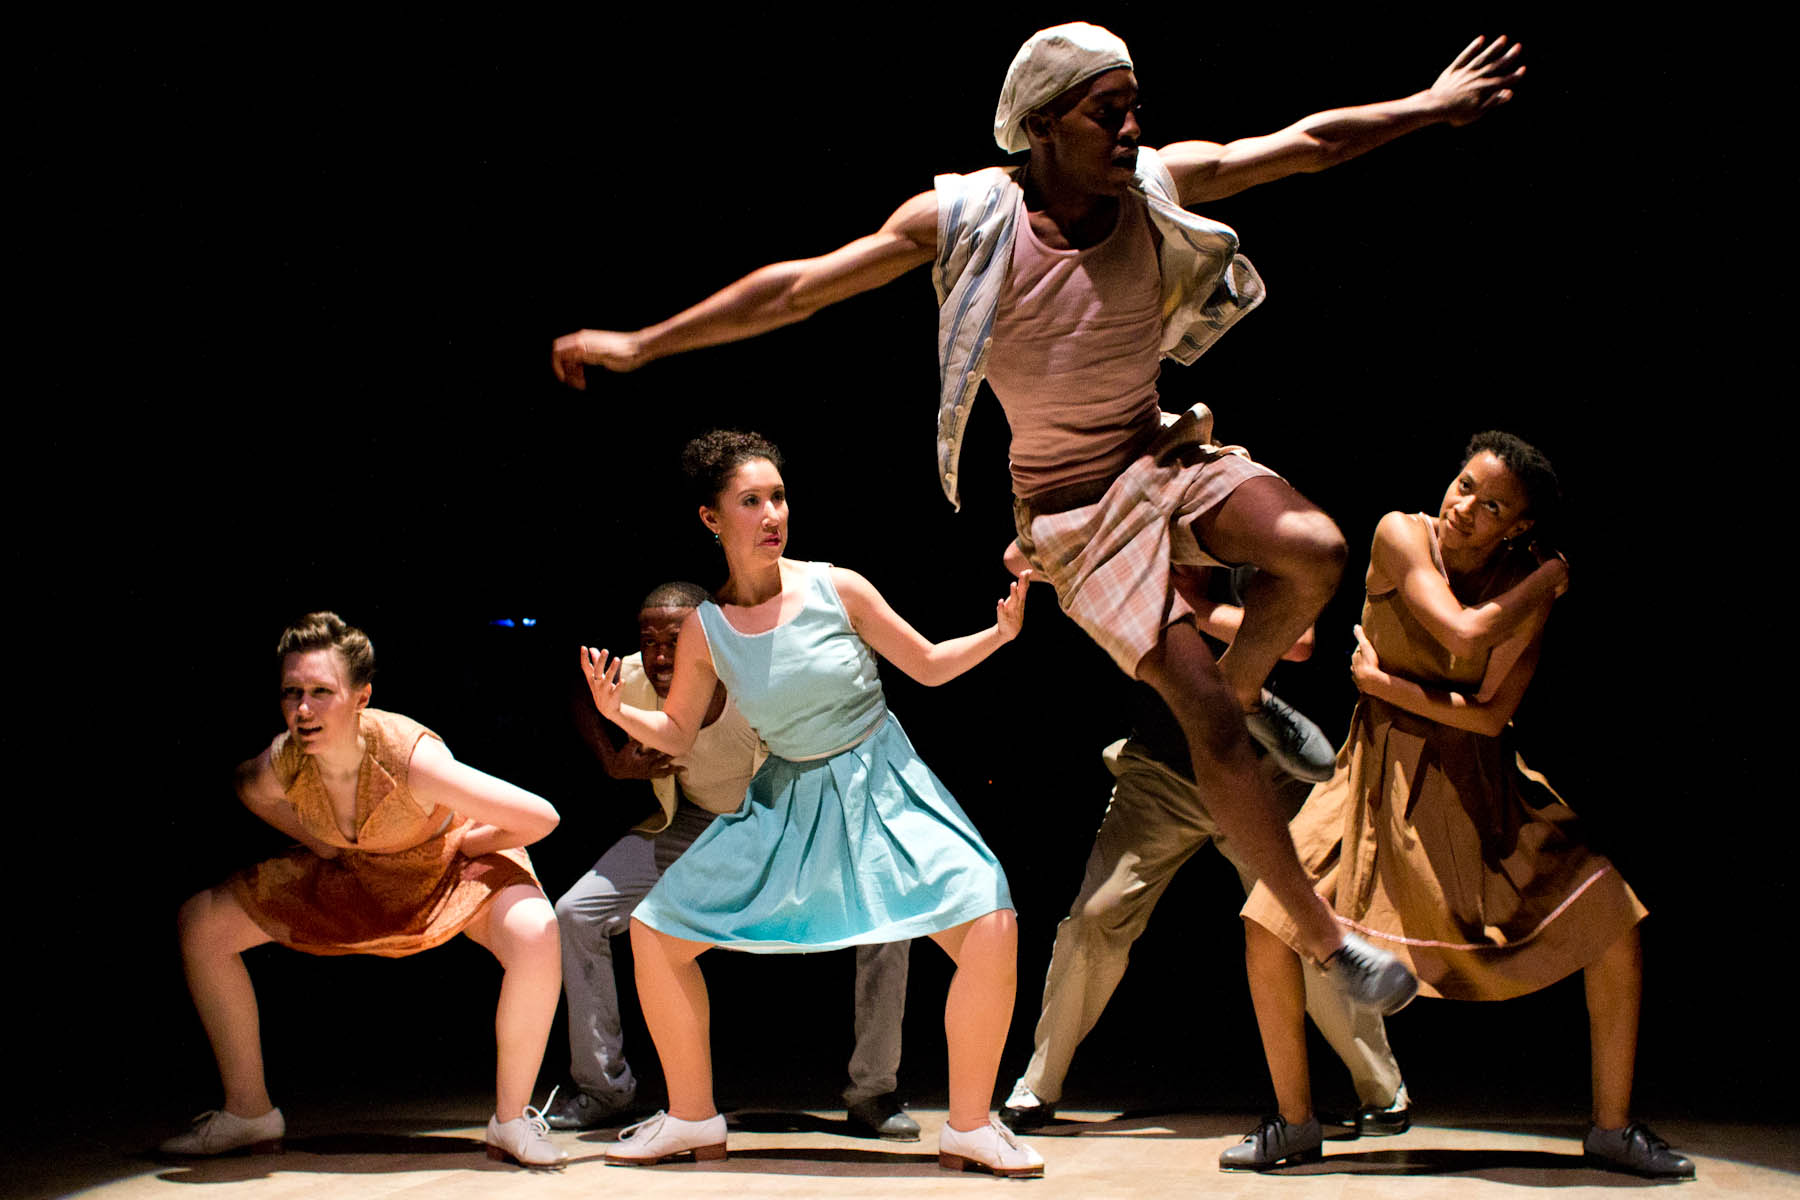 Dorrance Dance brings extreme tap to the Byham Theater stage.